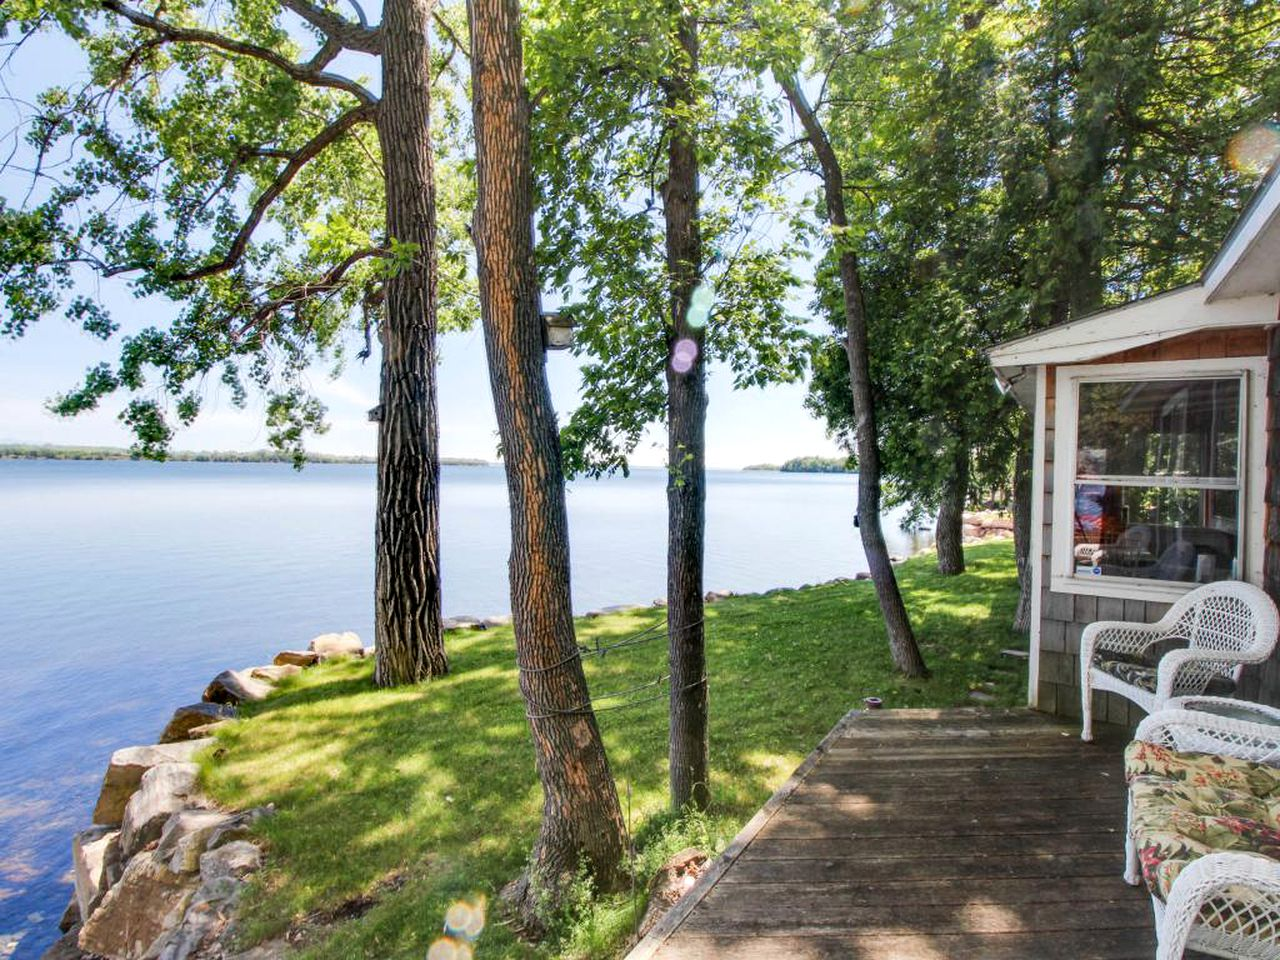 Waterfront cottage rental with front deck and porch chairs looking out over the water of Vermont'sLake Champlain.